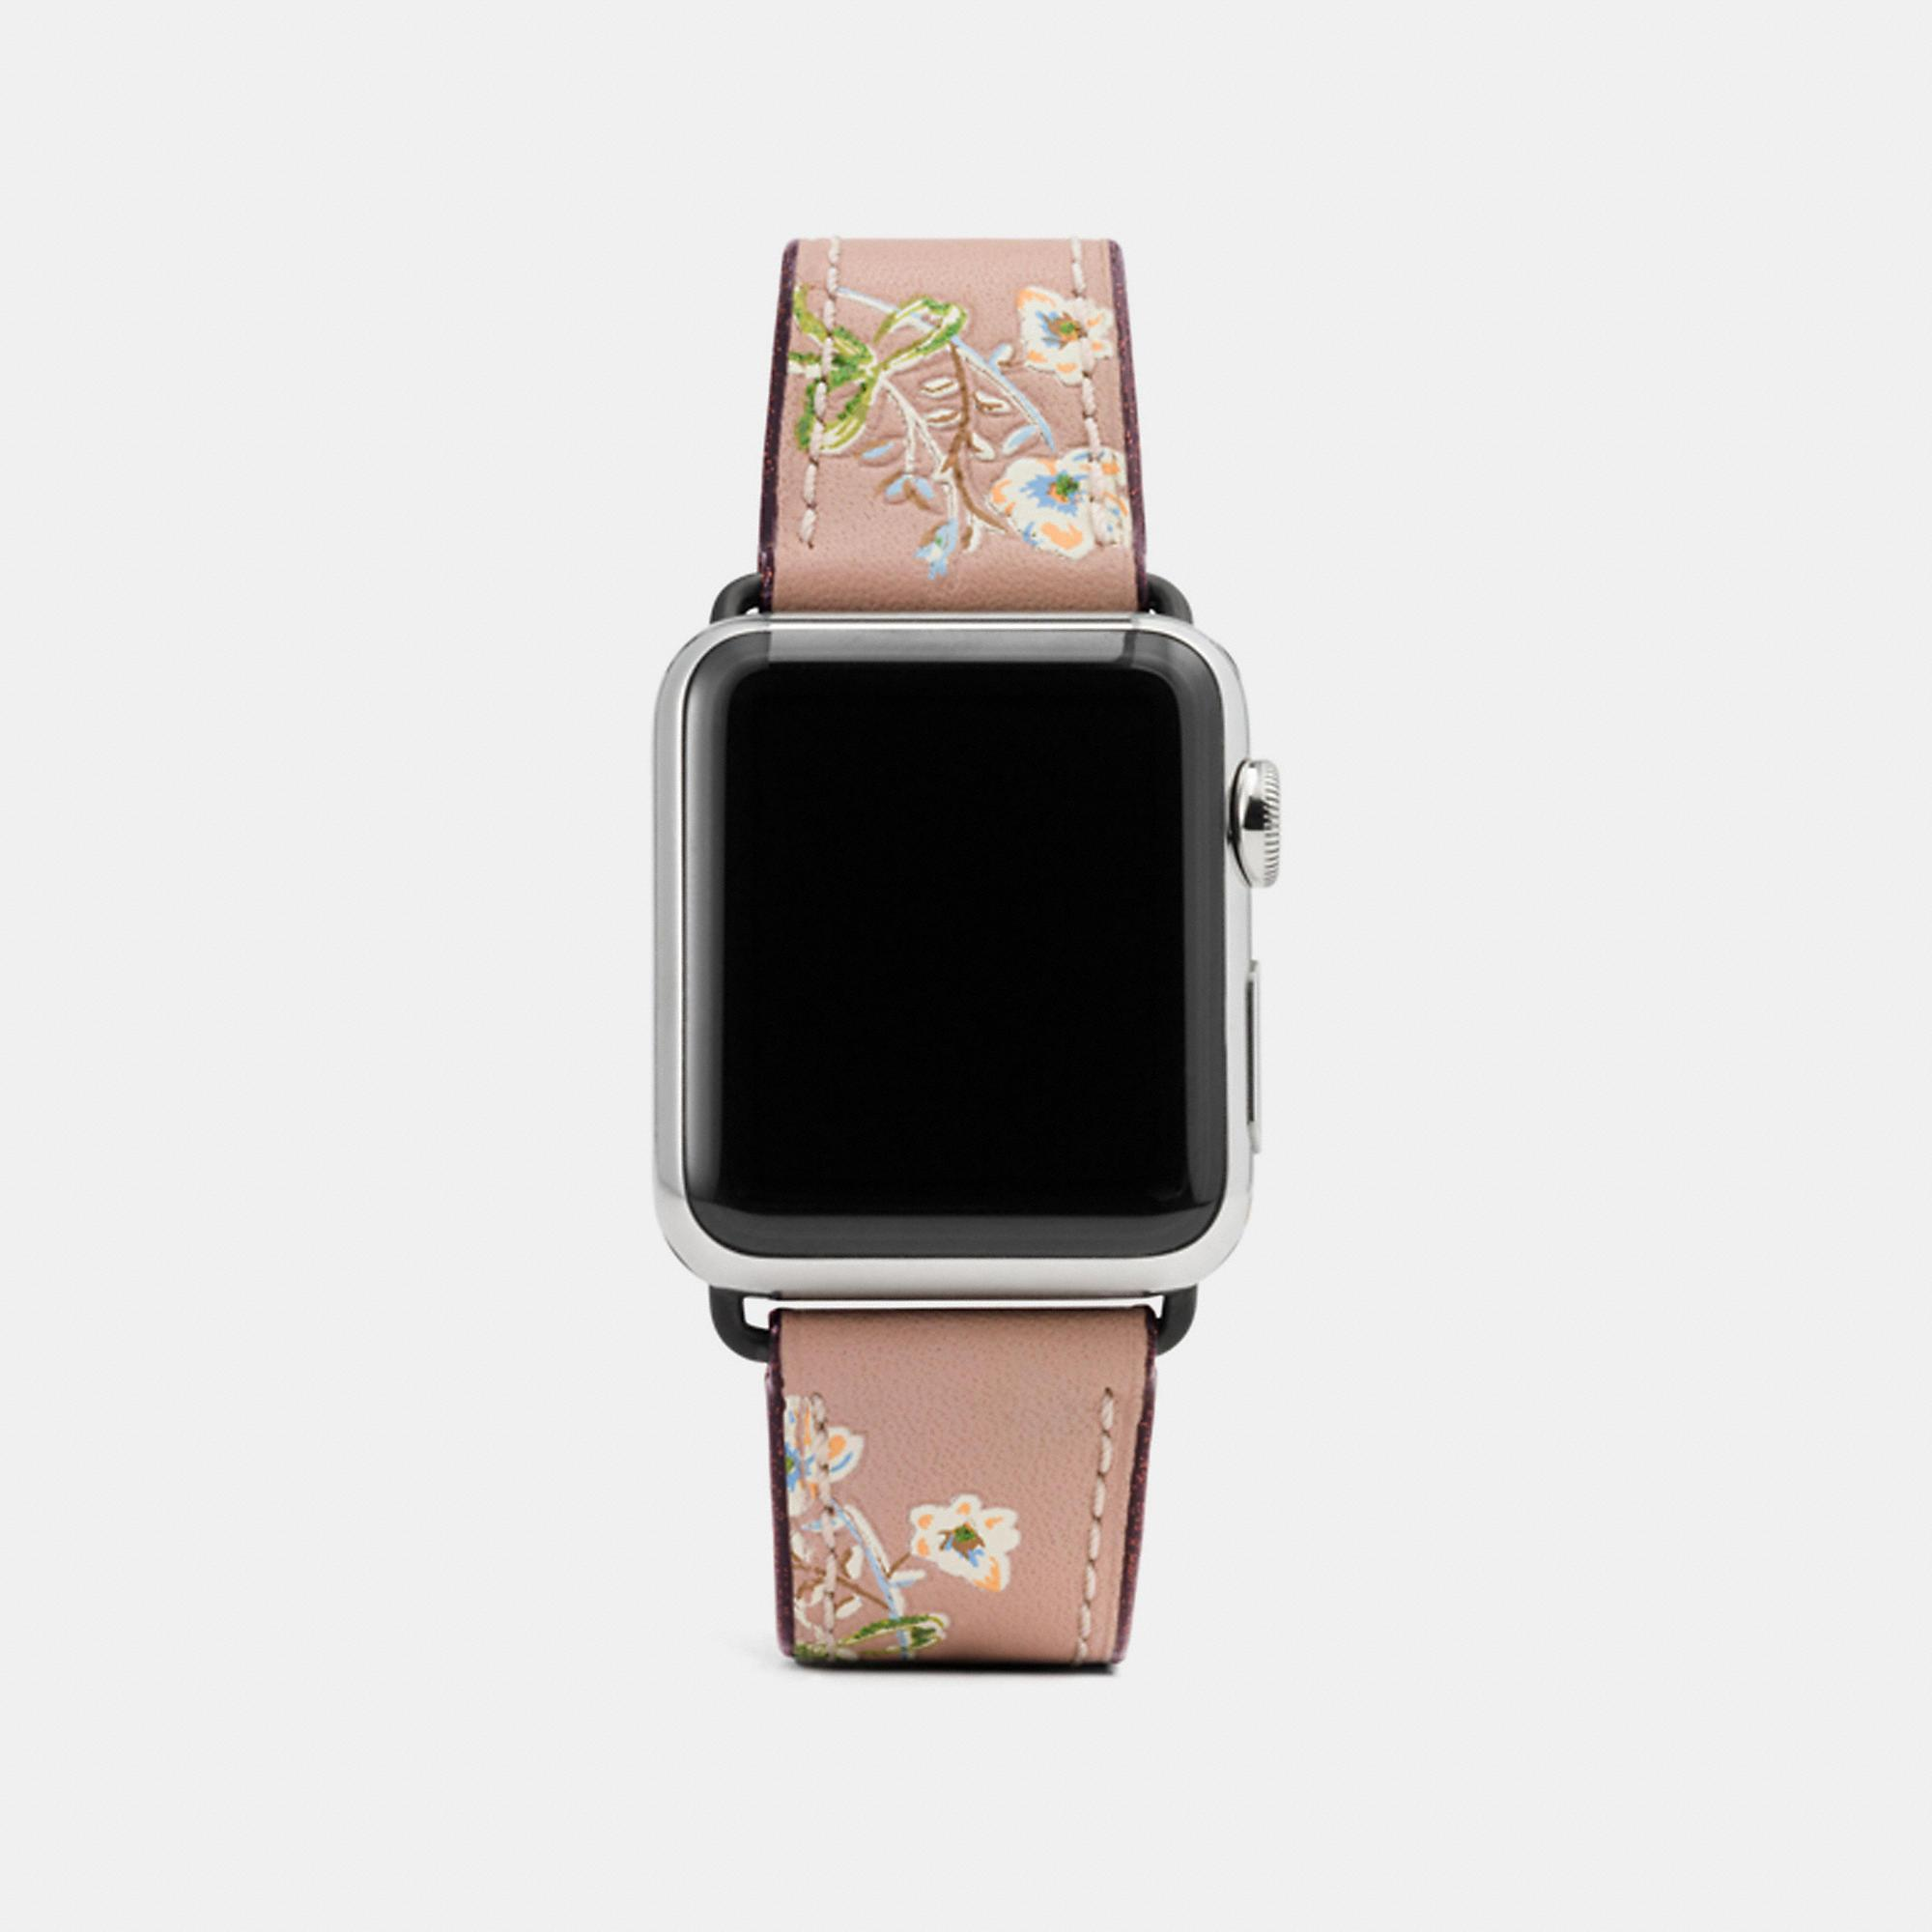 Coach Apple Watch Strap With Prints In Melon Multi